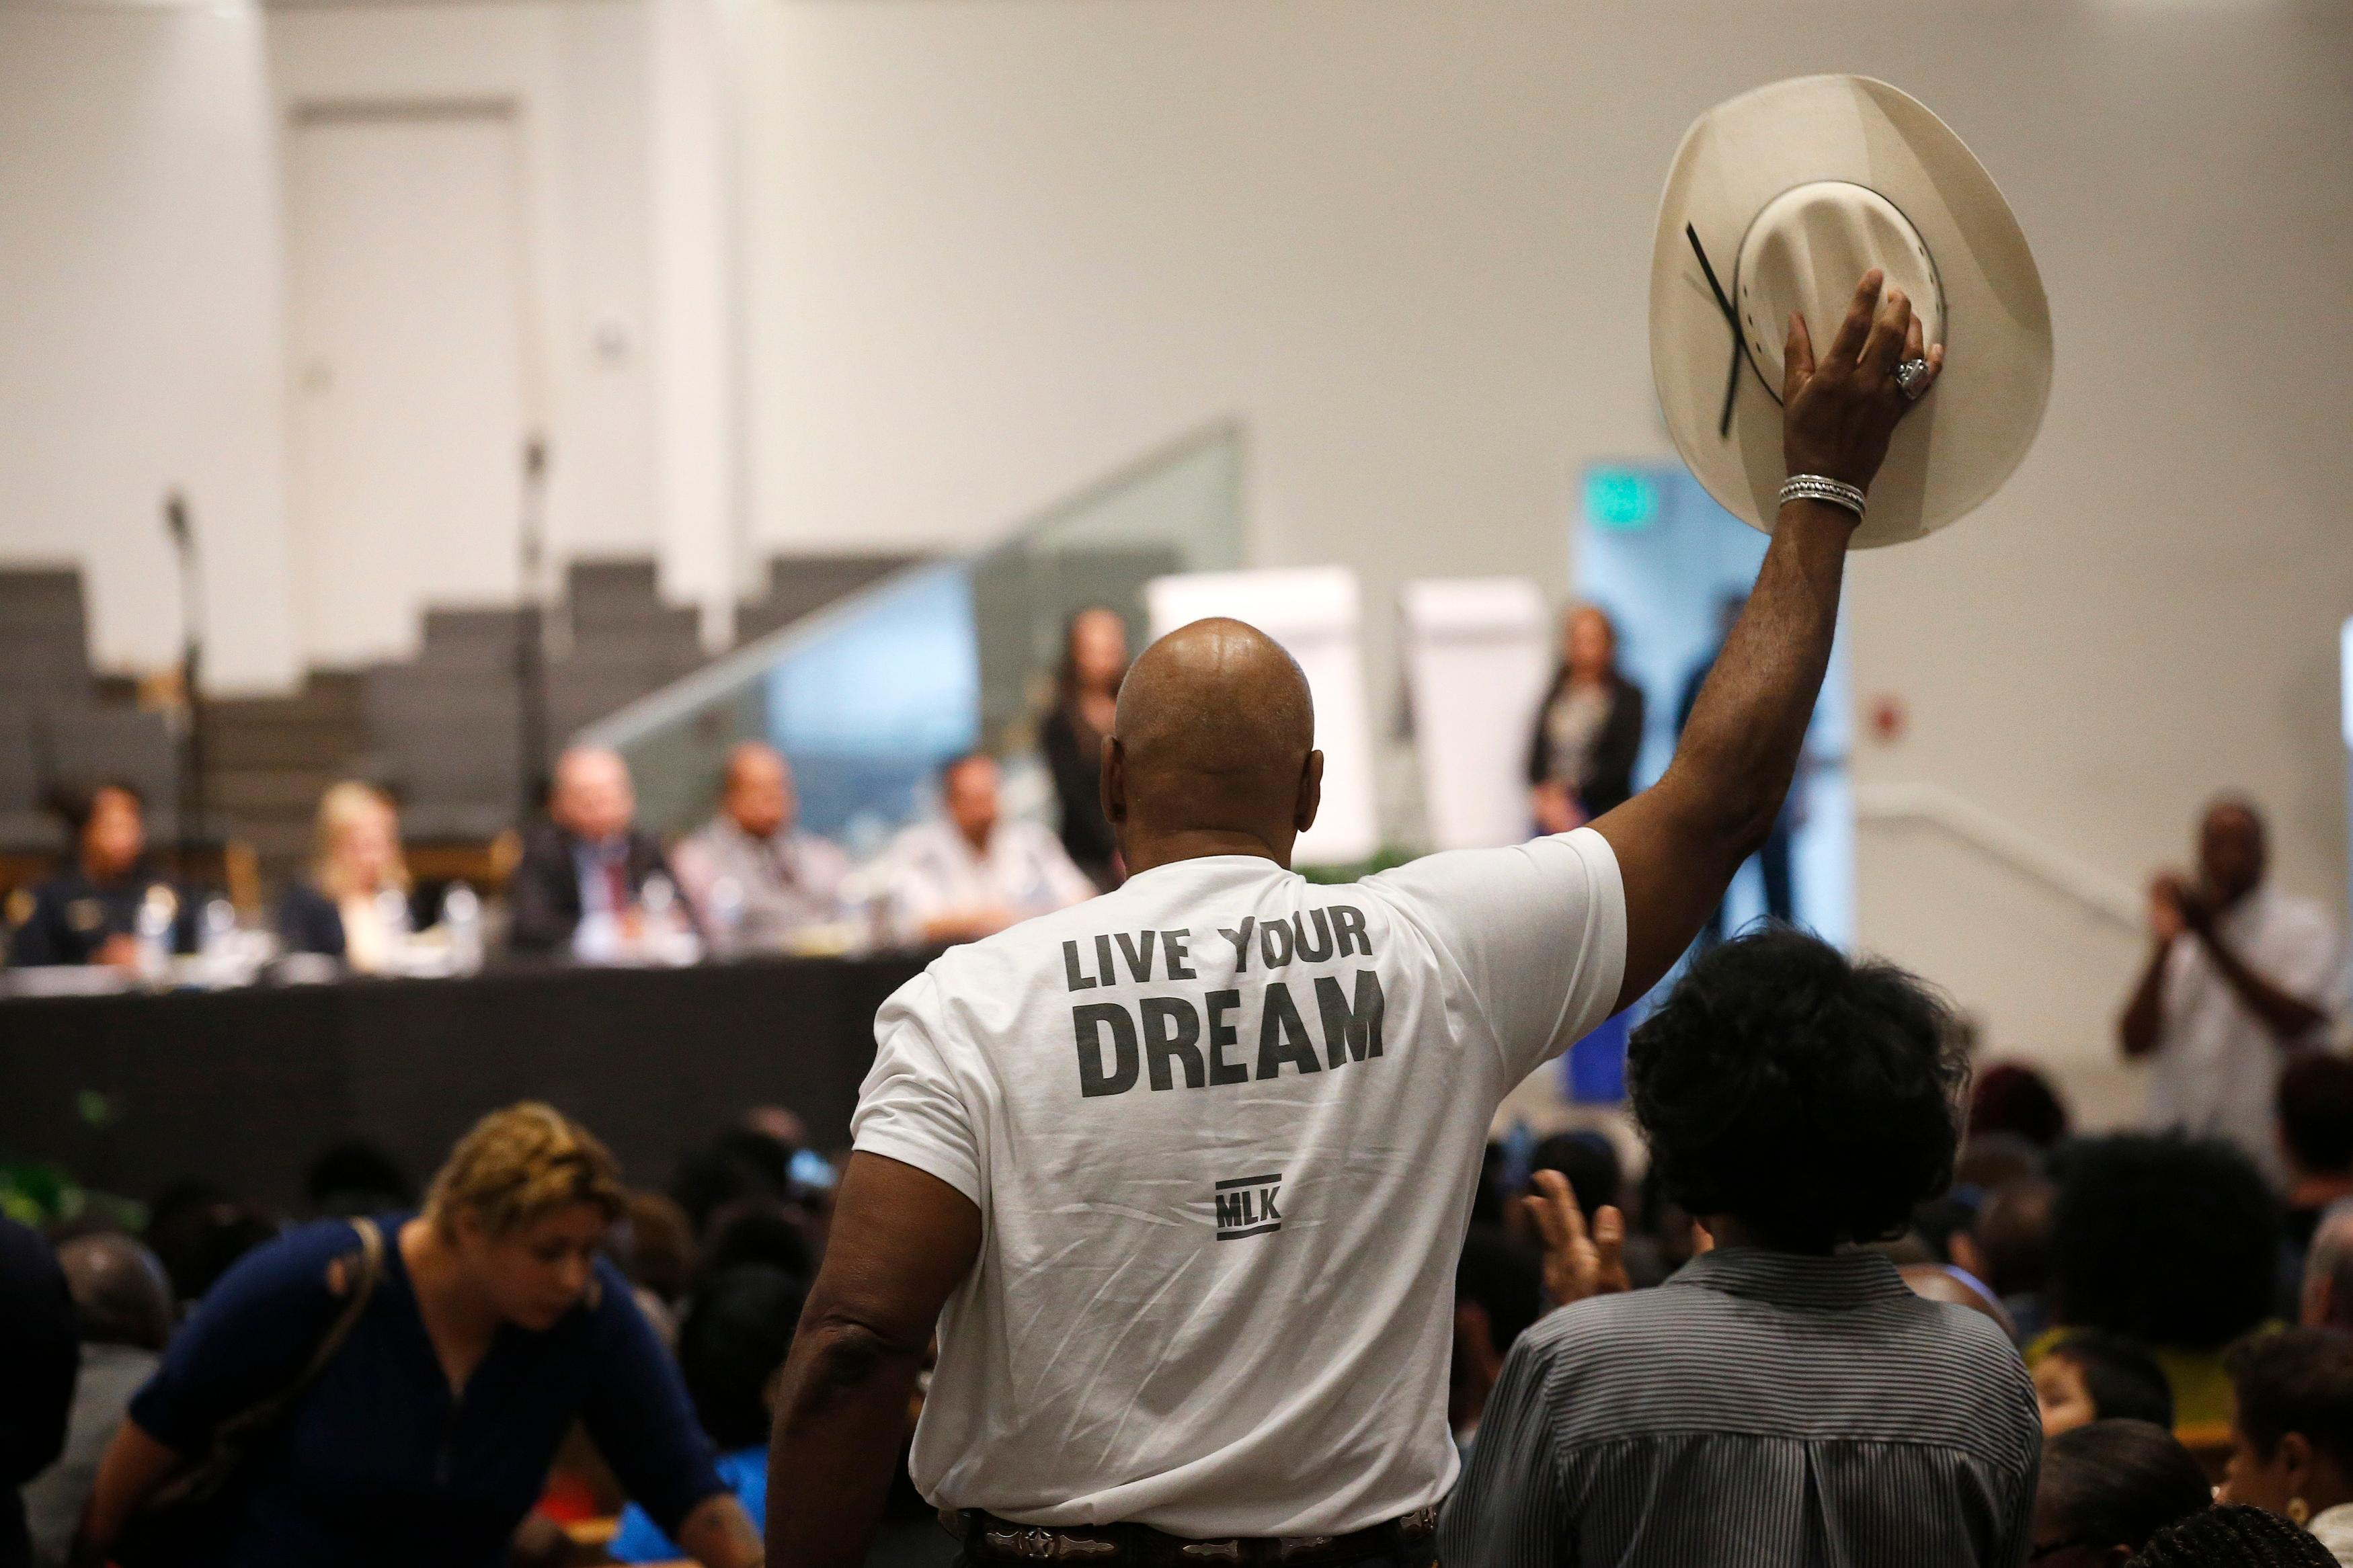 A Phoenix resident stands up to wave his cowboy hat in support of a speaker at a community meeting, Tuesday, June 18, 2019, in Phoenix. (AP Photo/Ross D. Franklin)